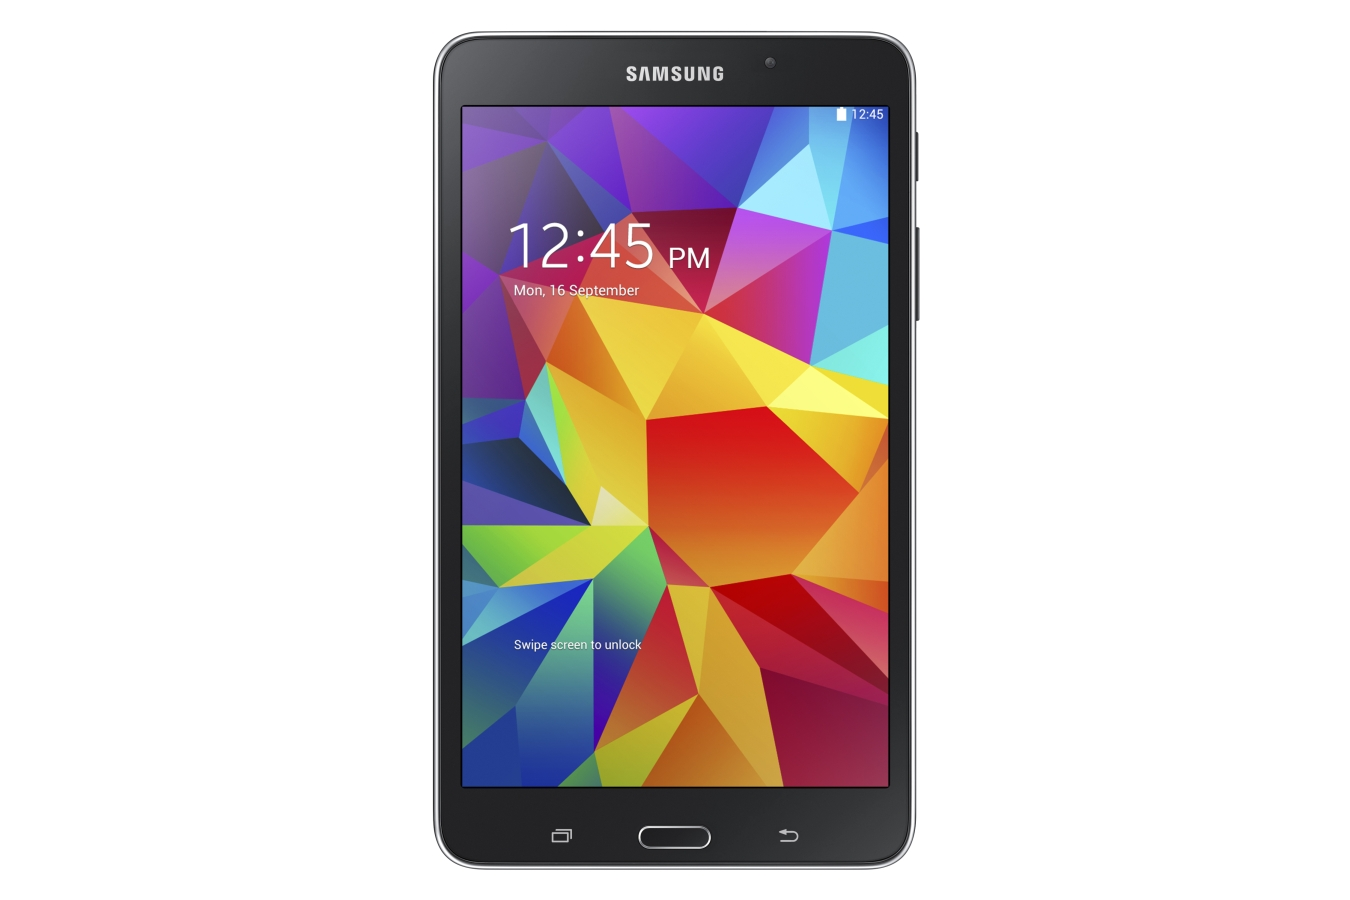 samsung galaxy tab 4 7 0 release may 1   how good is it by comparison